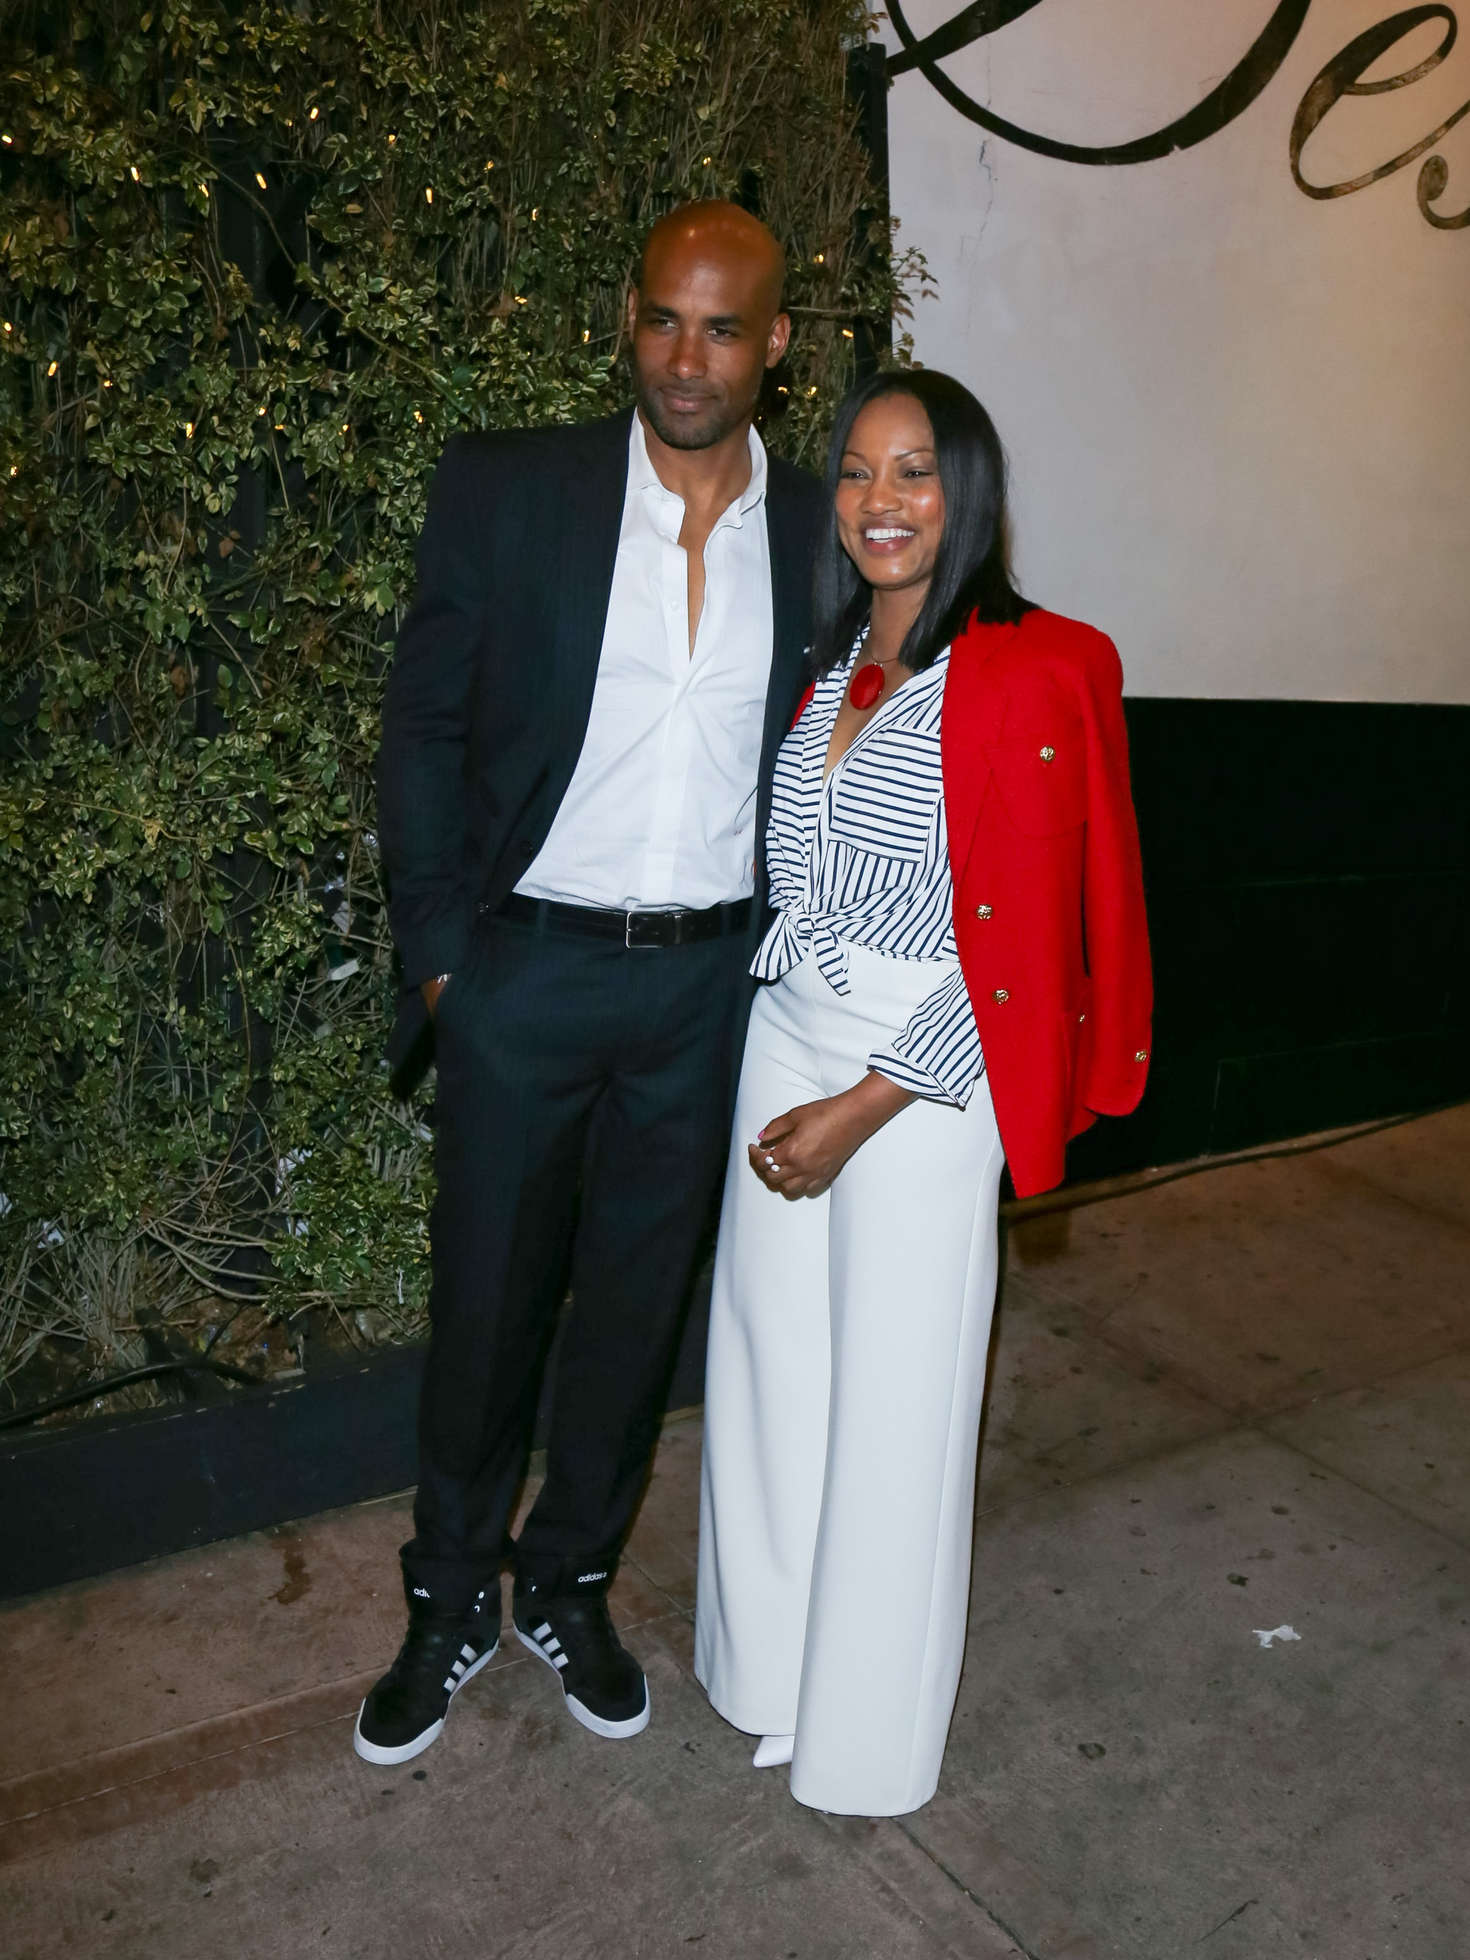 Garcelle Beauvais at a fundraising event at Beso in Los Angeles